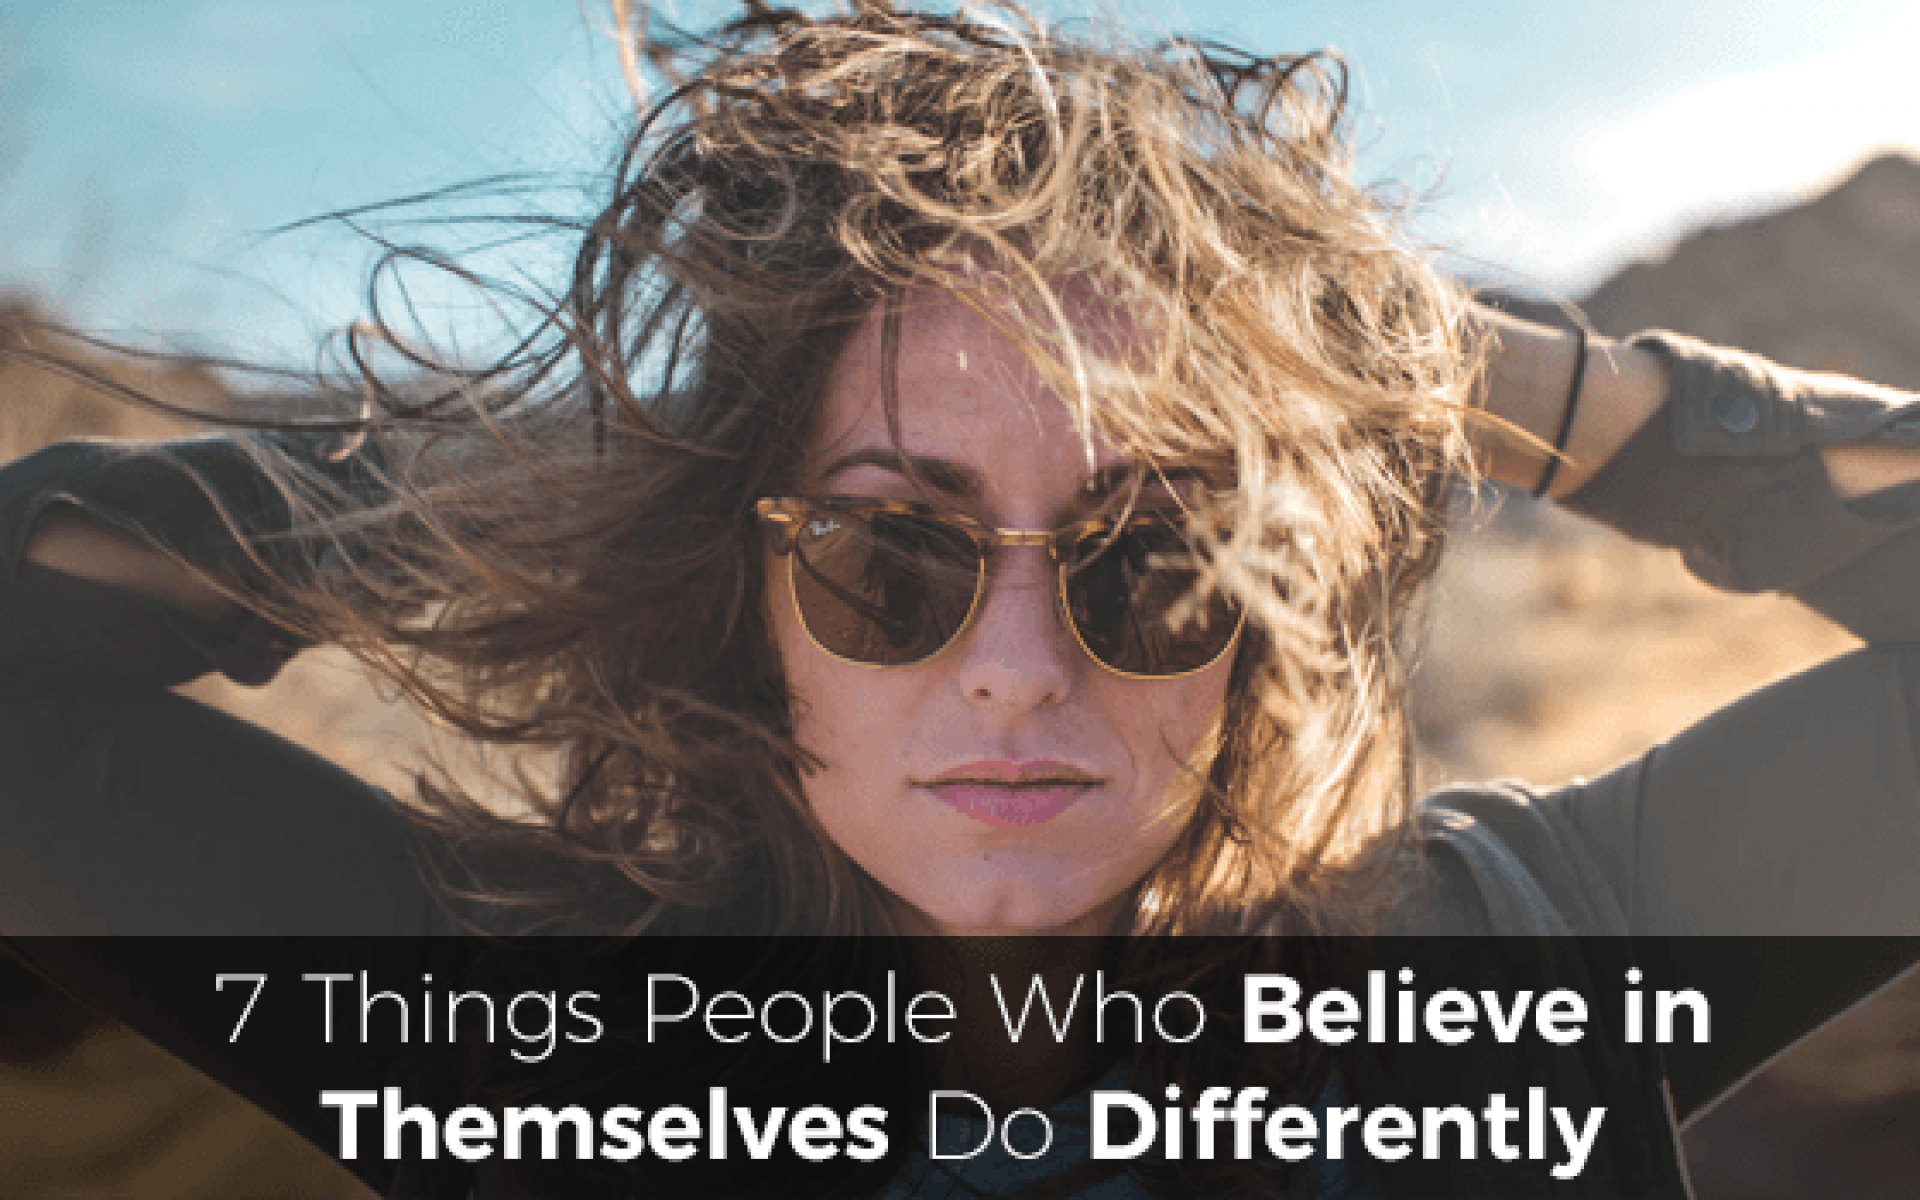 7 Things People Who Believe in Themselves Do Differently